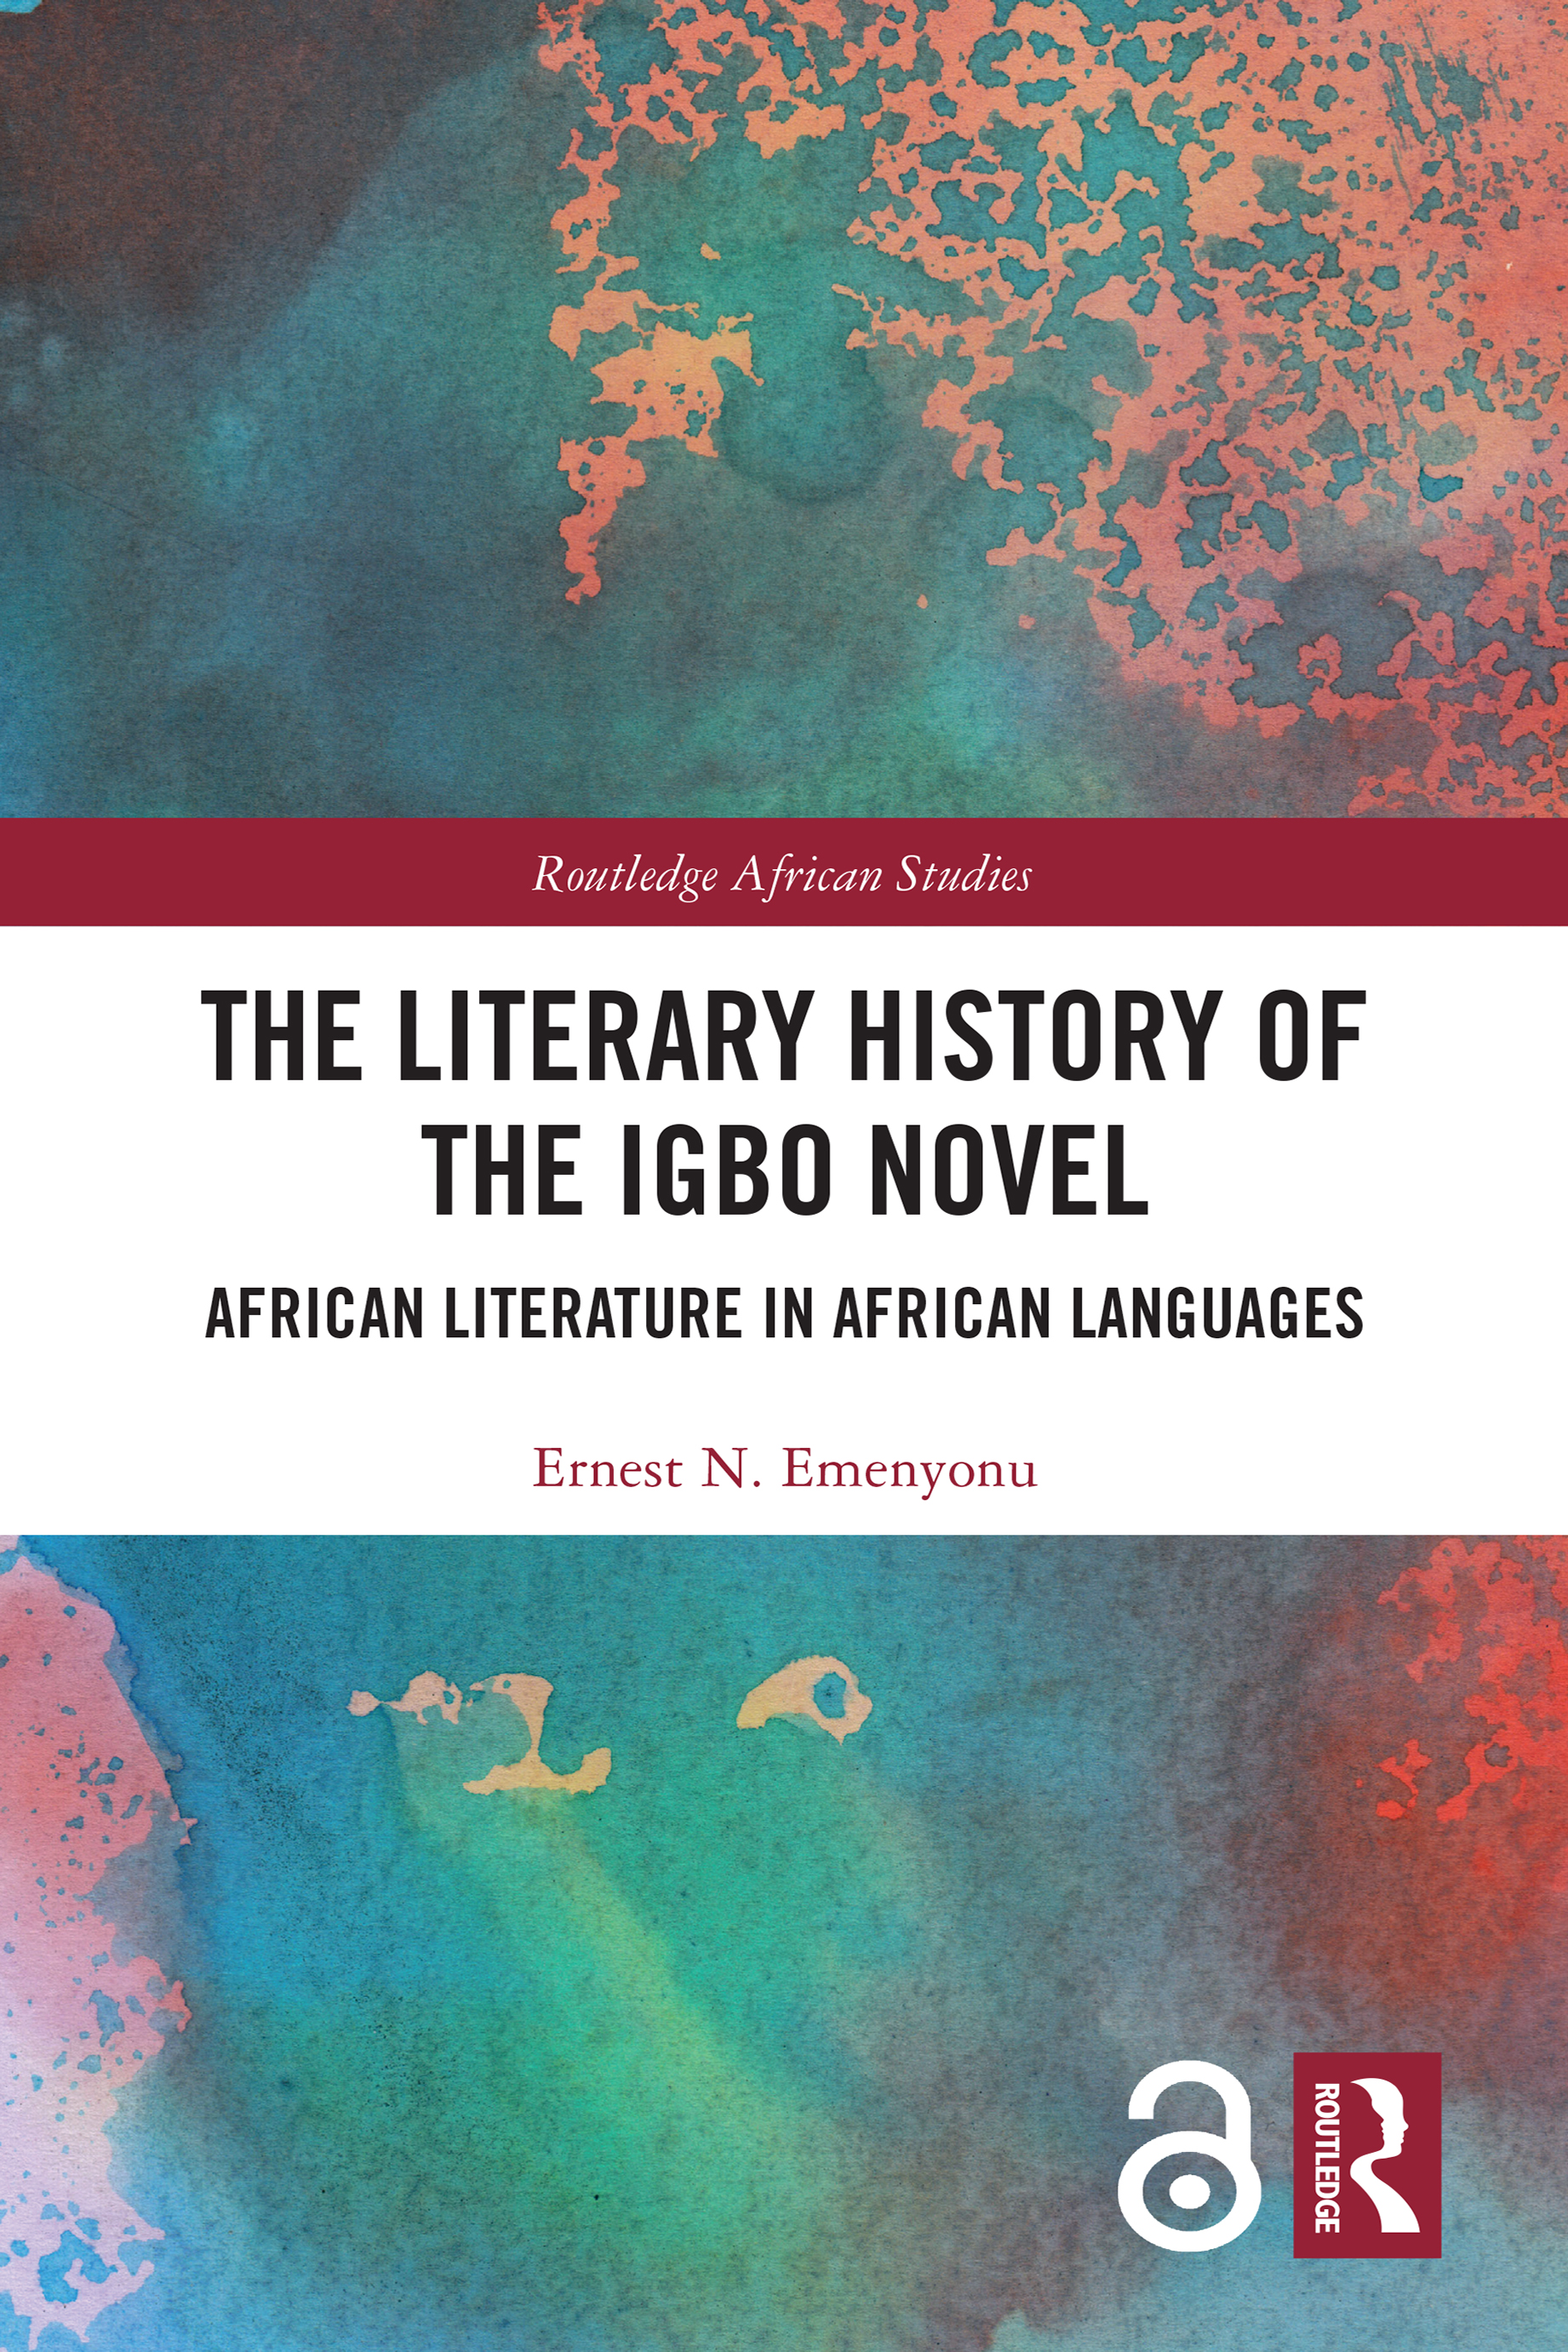 The Literary History of the Igbo Novel